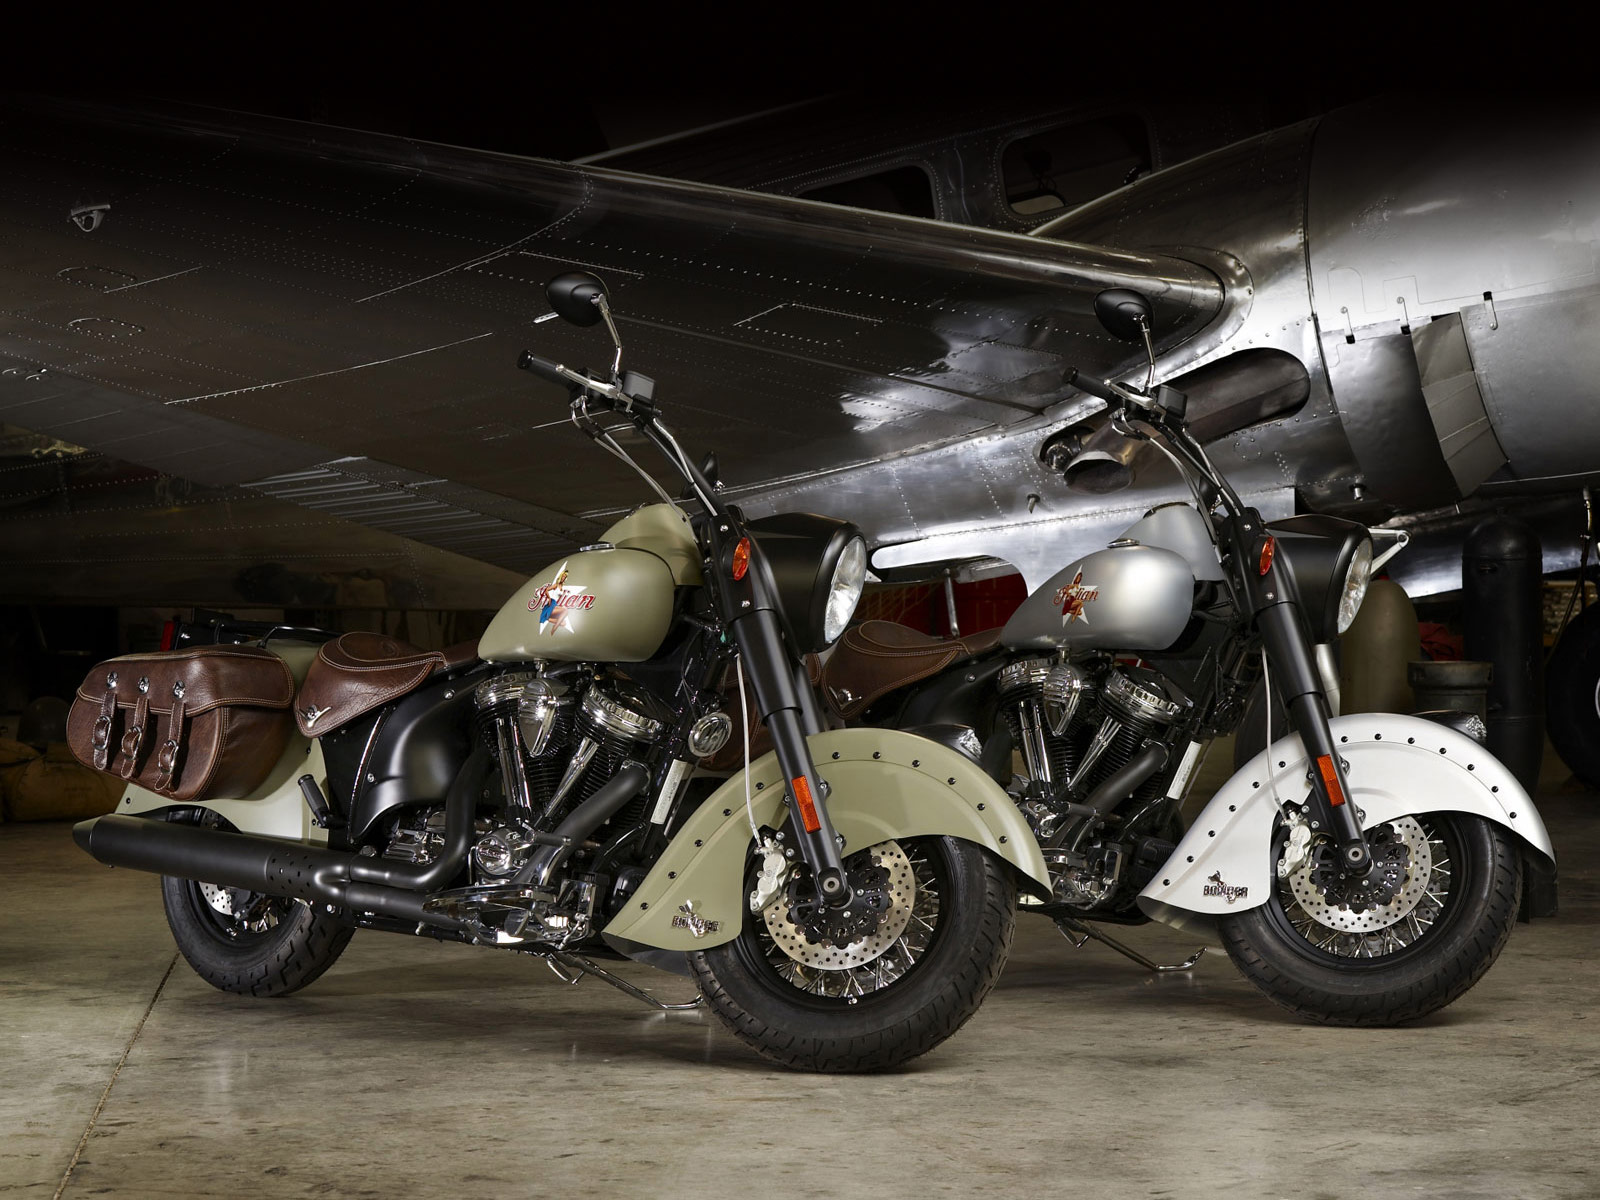 2014 Indian Motorcycle